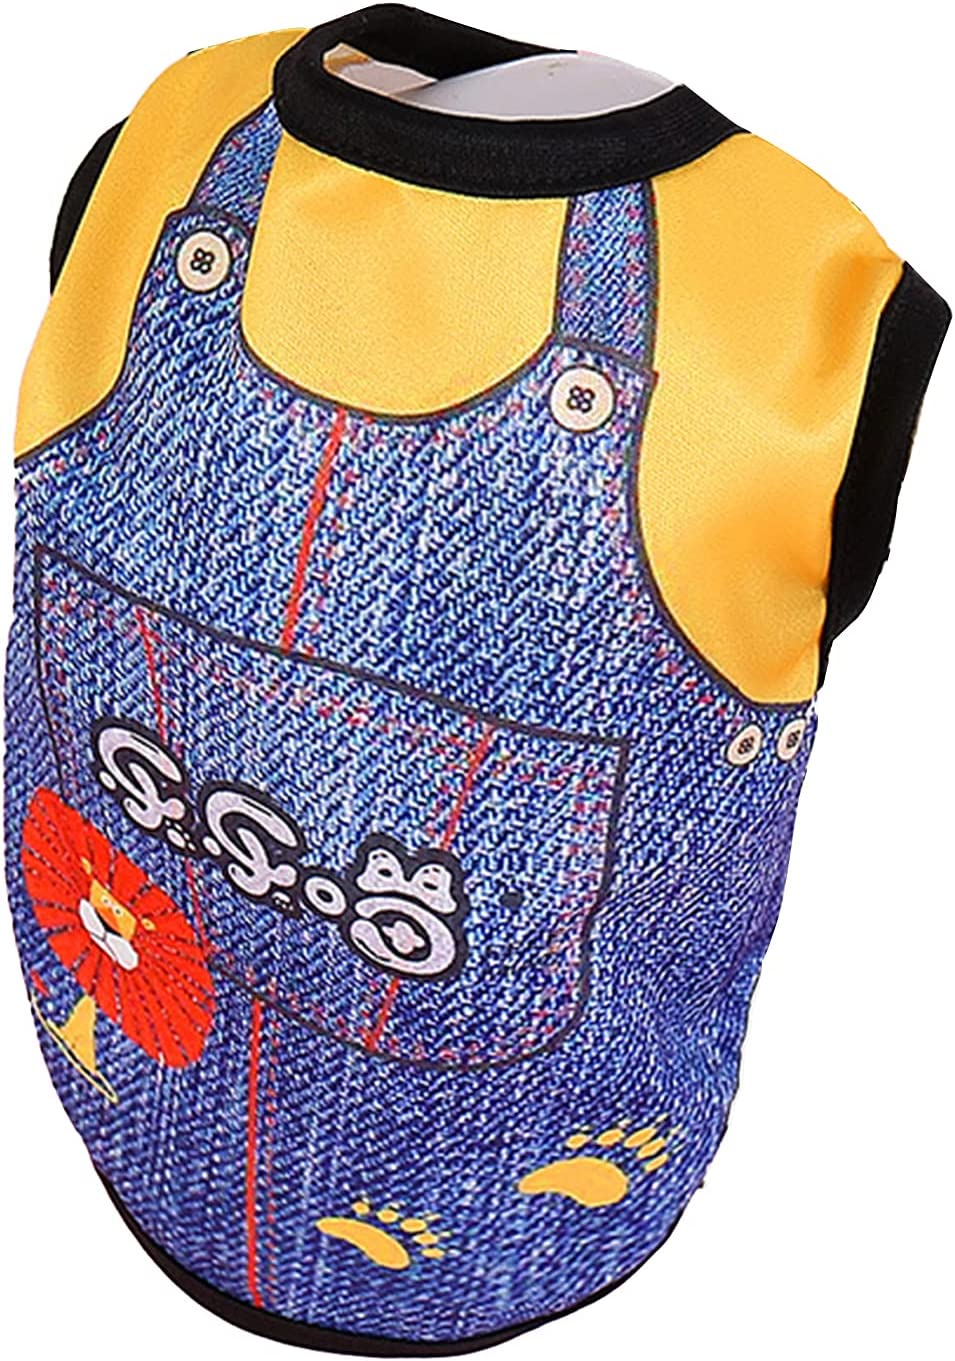 yanbirdfx Pet Max 55% OFF T-Shirt SEAL limited product Beautiful Breathable Costume Vest Dog Skin